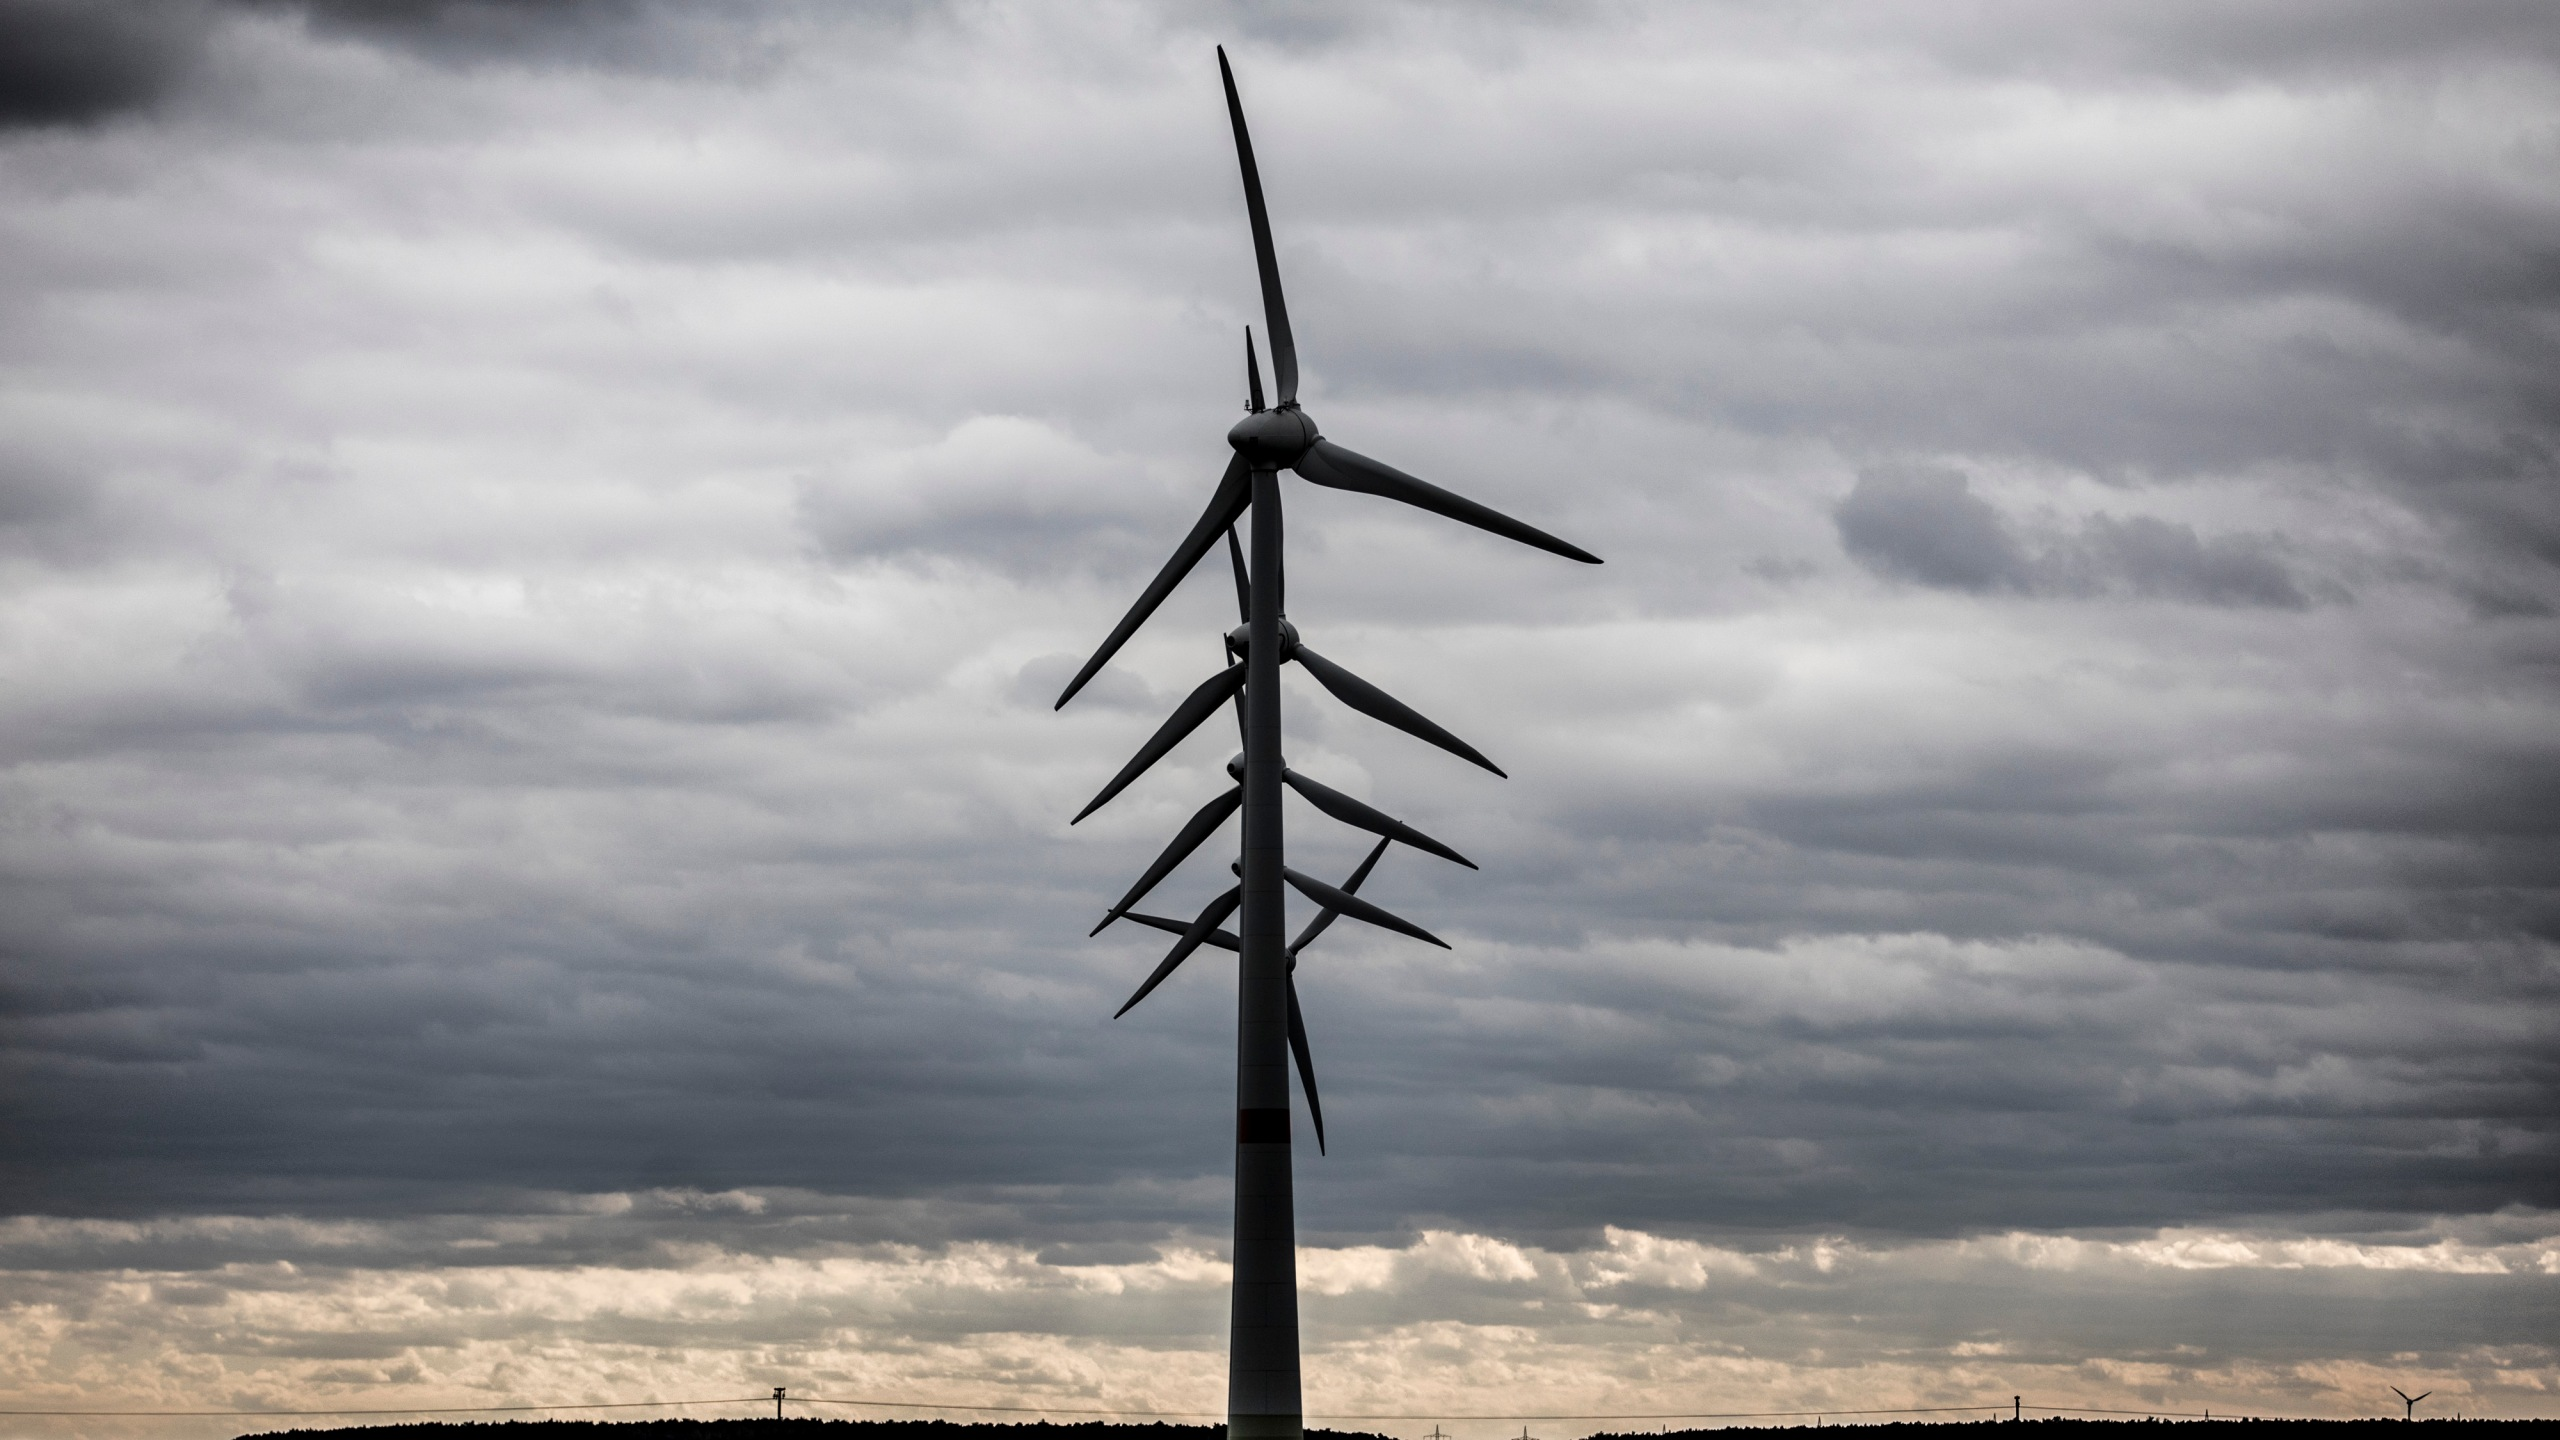 Wind turbines in a wind park are pictured on March 13, 2019. (Credit: Florian Gaertner/Photothek via Getty Images)